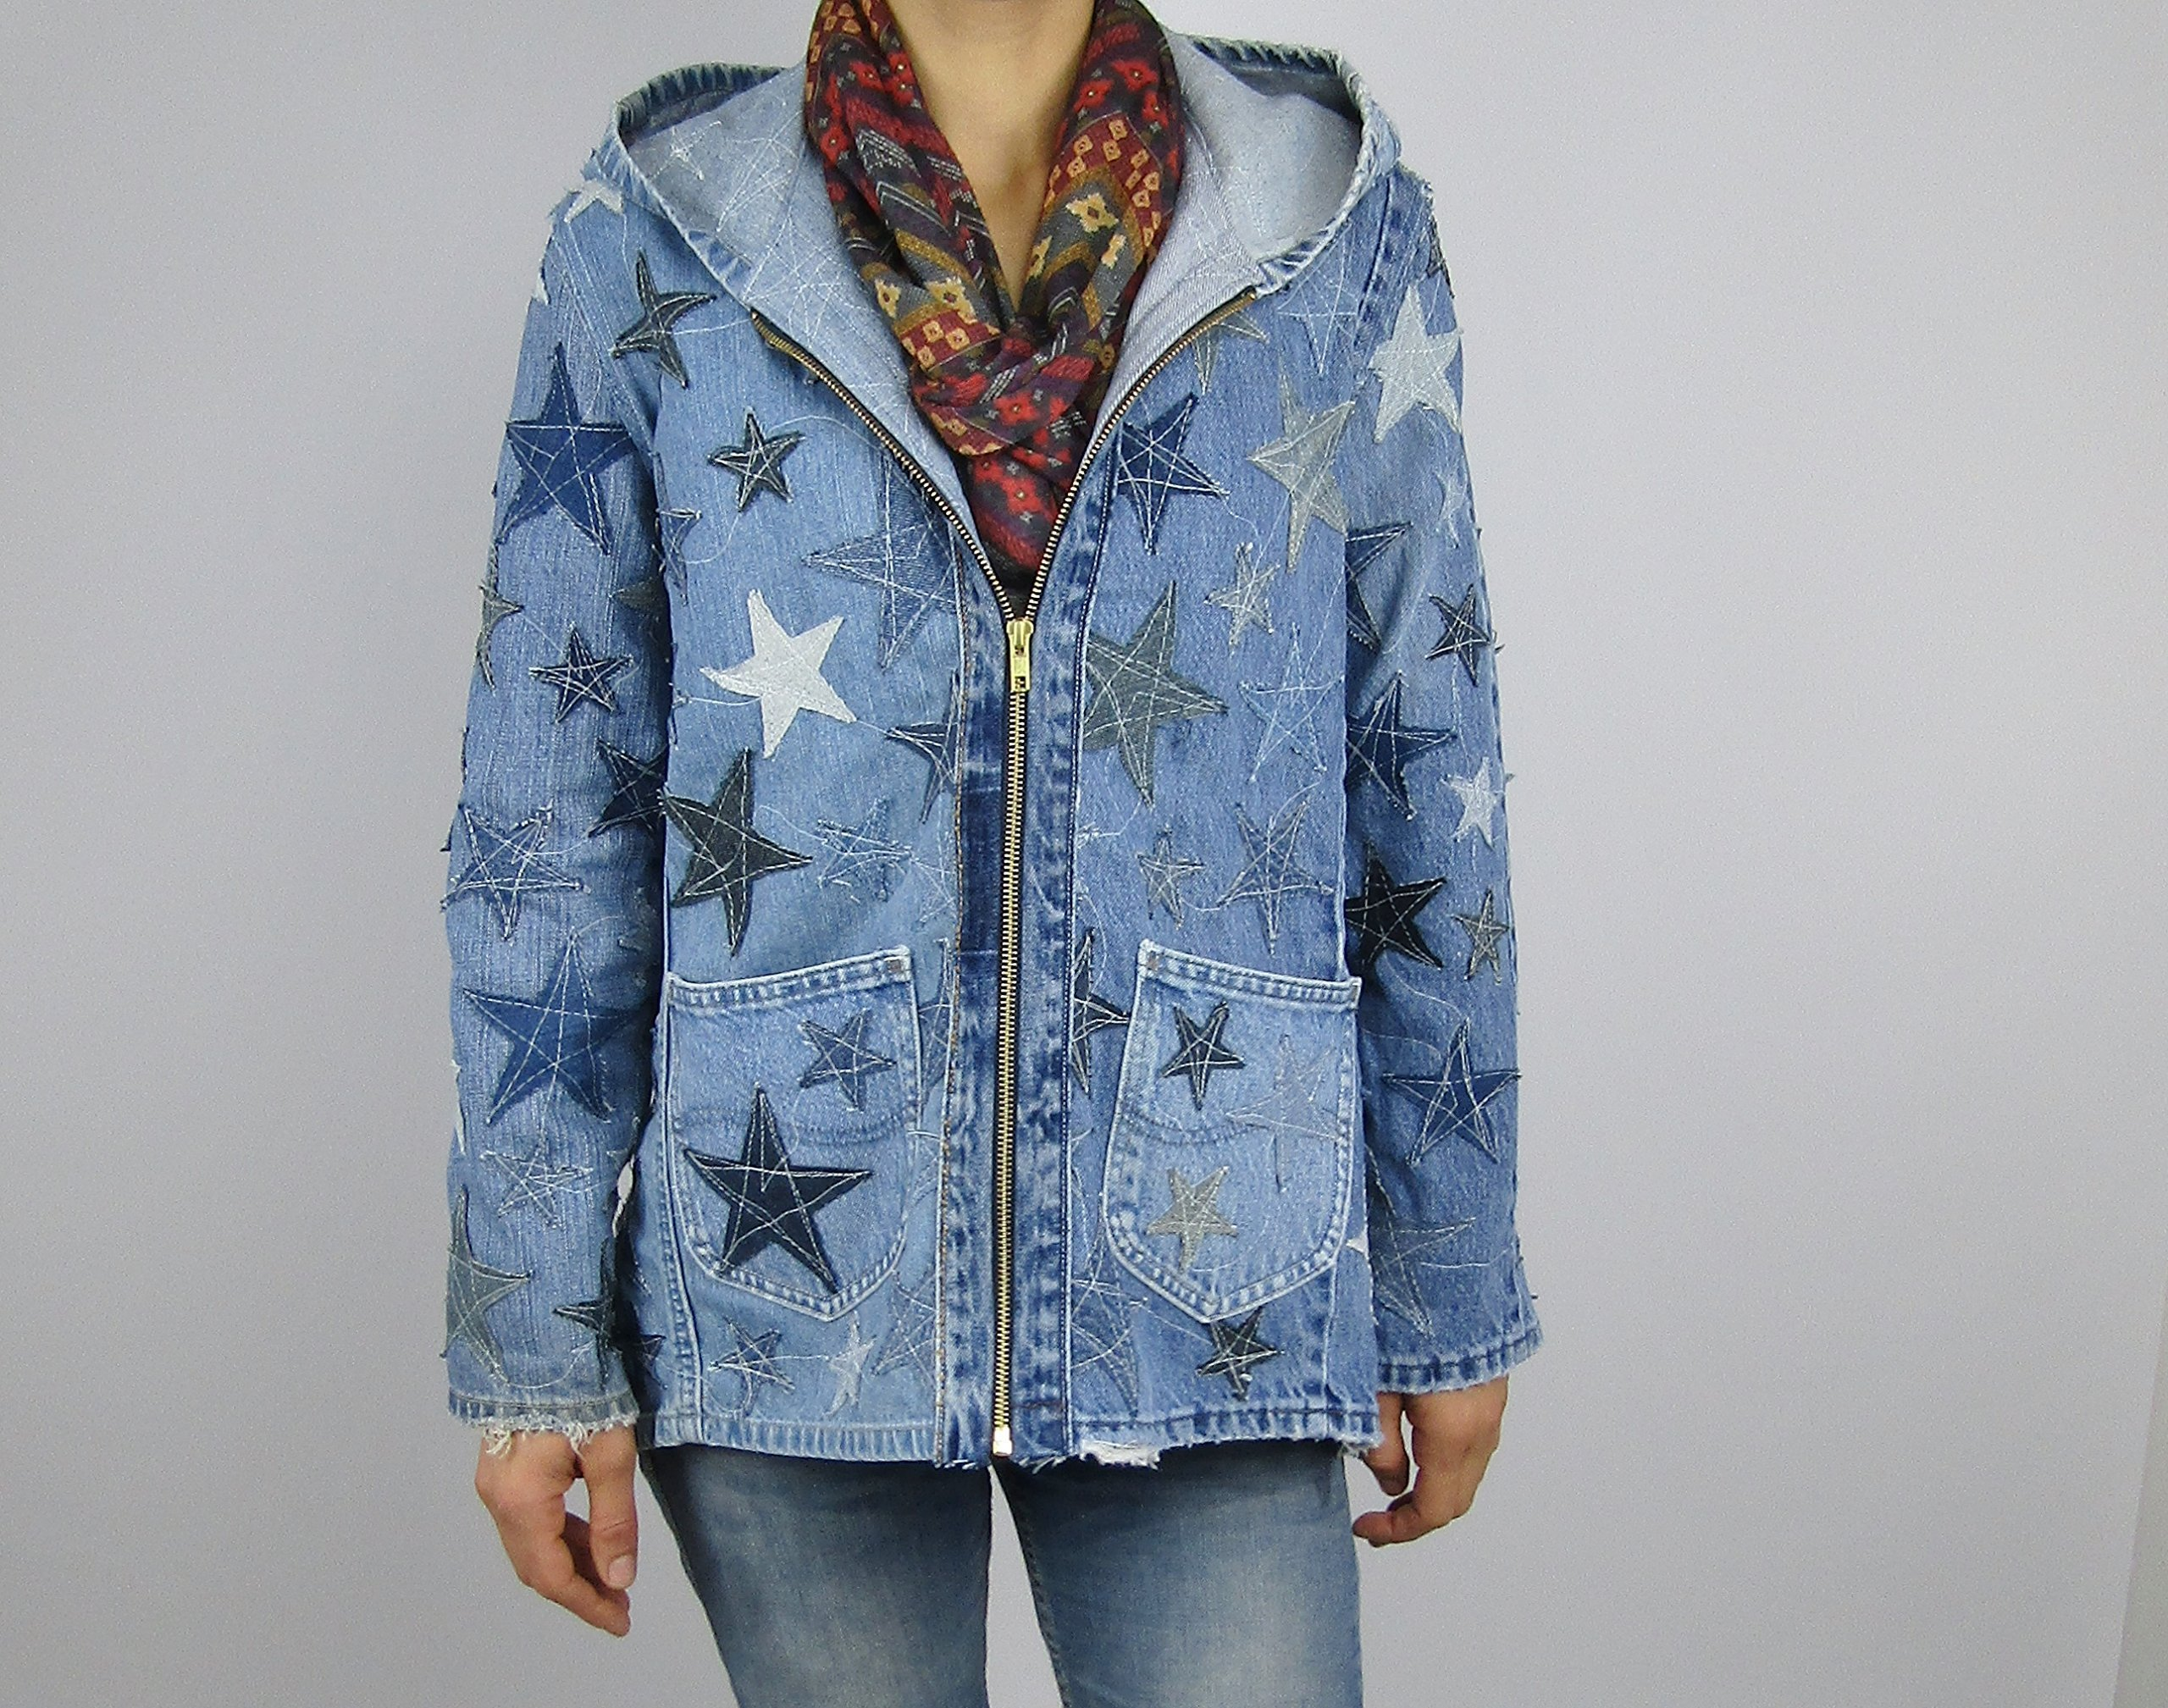 Hooded Denim Jacket Small with Star Applique